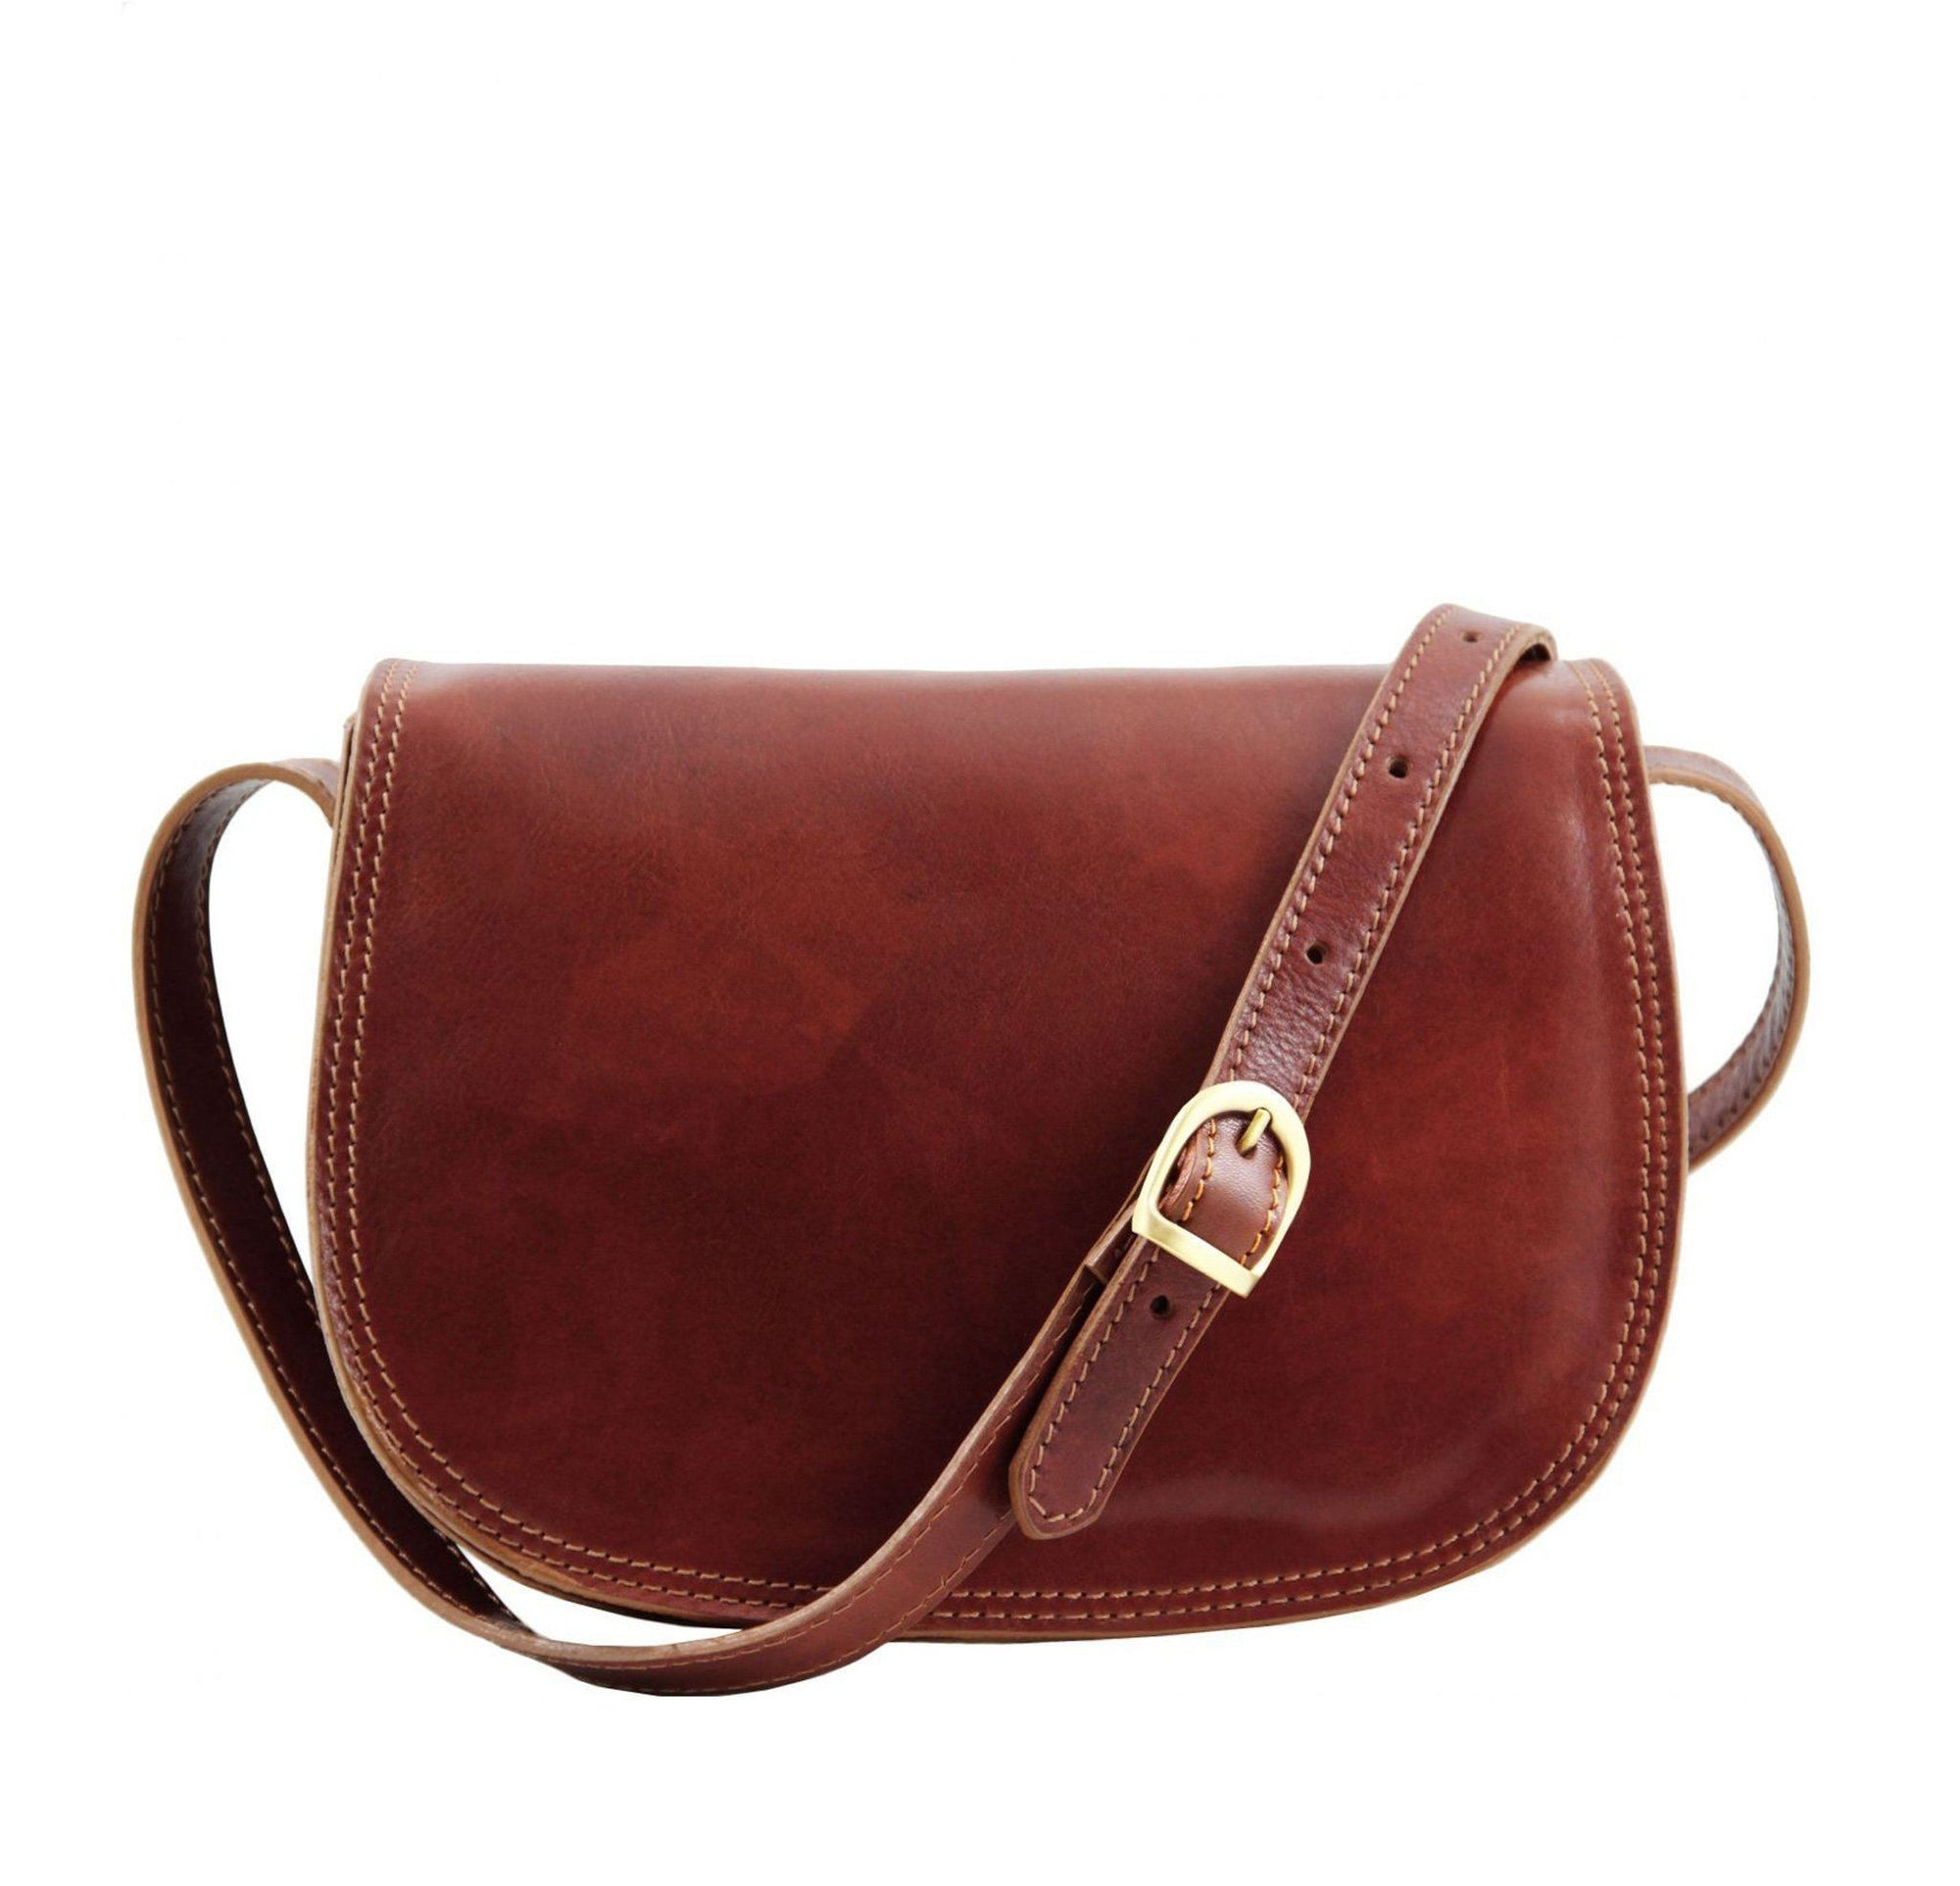 Isabella Leather Bag Leather Handbag TUSCANY LEATHER Brown